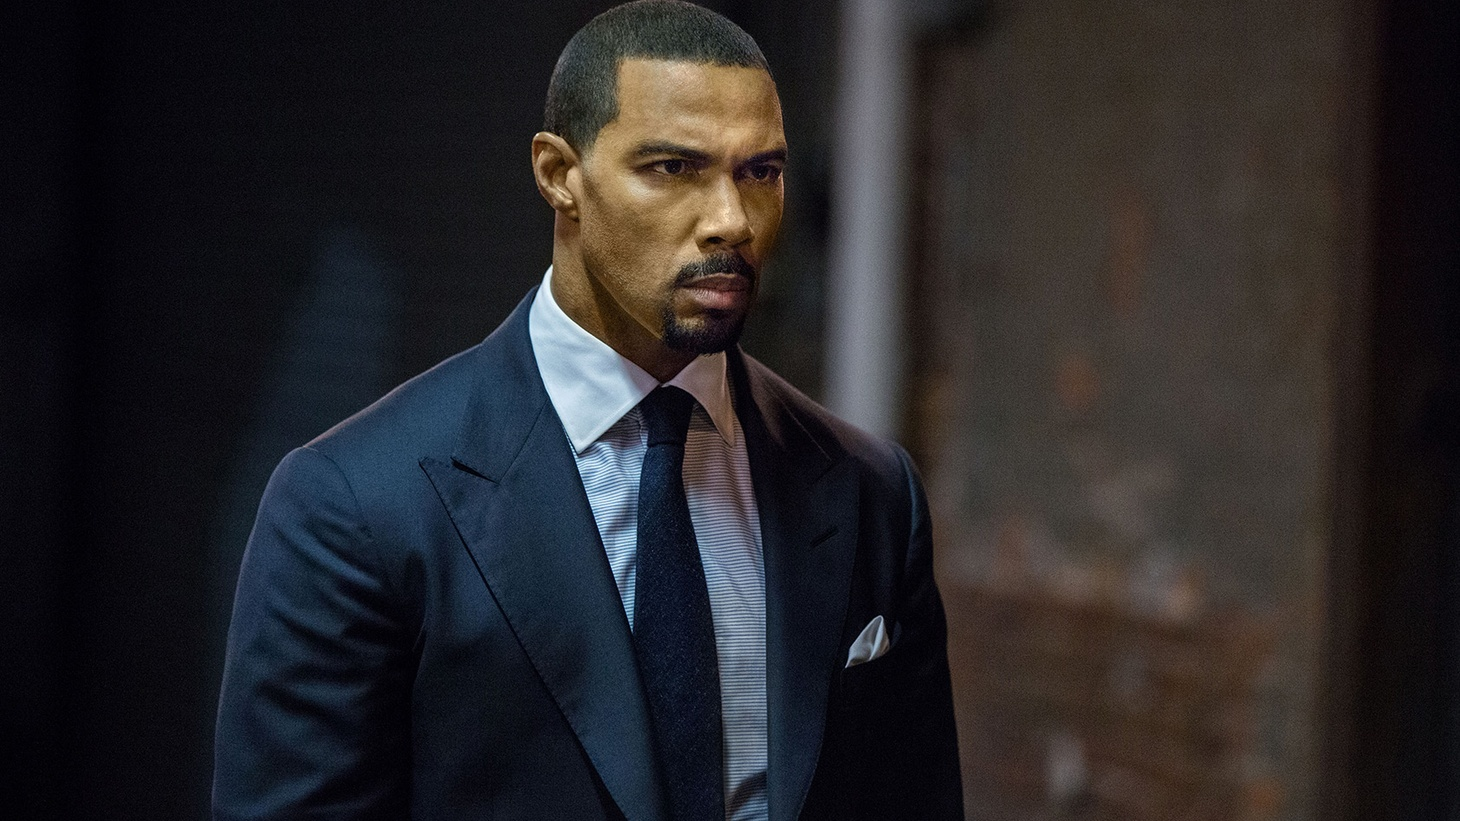 Actor Omari Hardwick stops by The Treatment to discuss his hesitation in playing lead role of Ghost in Starz' Power.